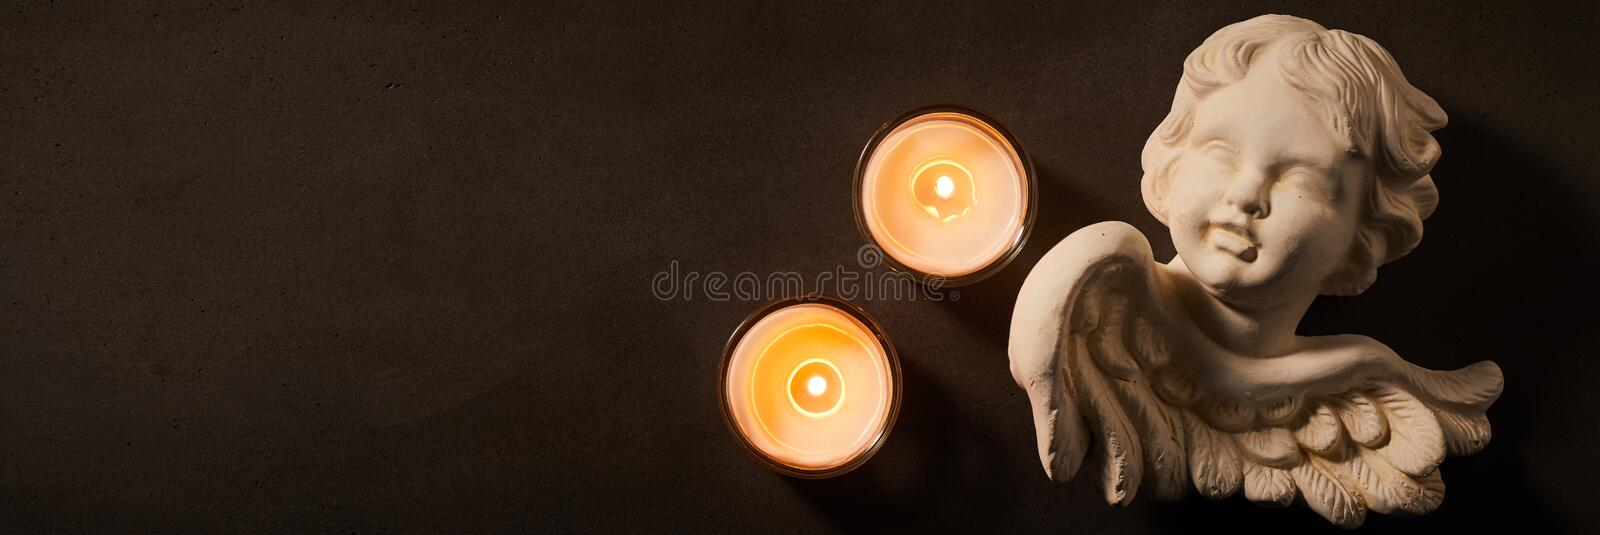 Panorama banner with burning candles and angel stock photography